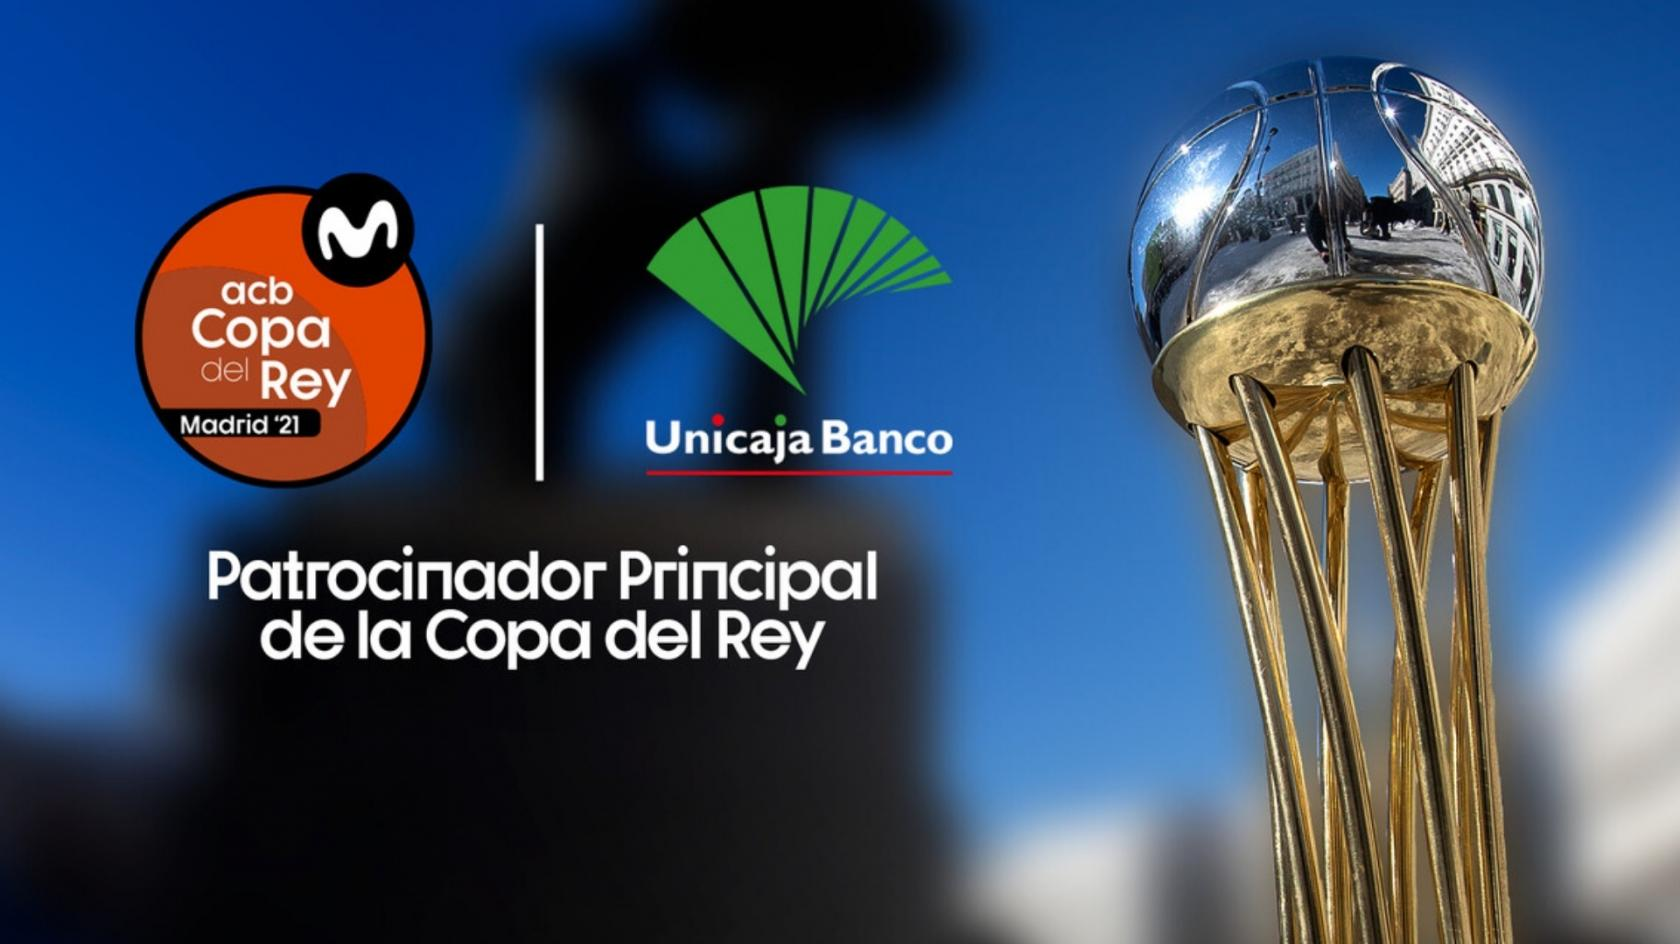 Unicaja Banco, main sponsor of Copa del Rey 2021